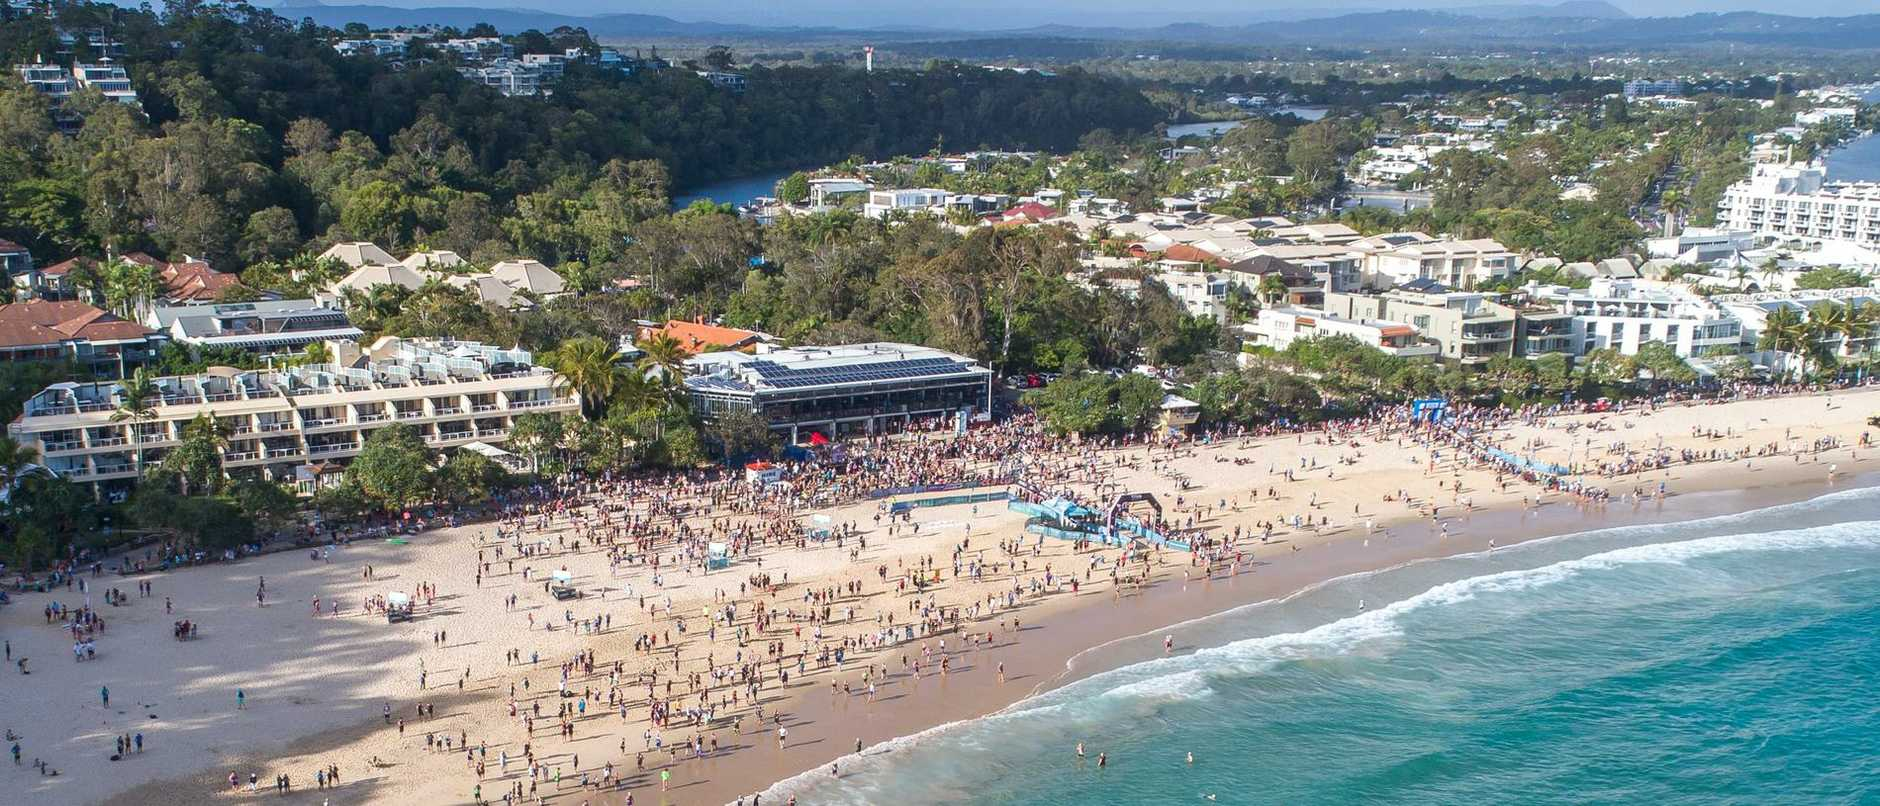 Noosa Tri needs to go ahead to support Noosa's economy according to the Noosa Chamber of Commerce.